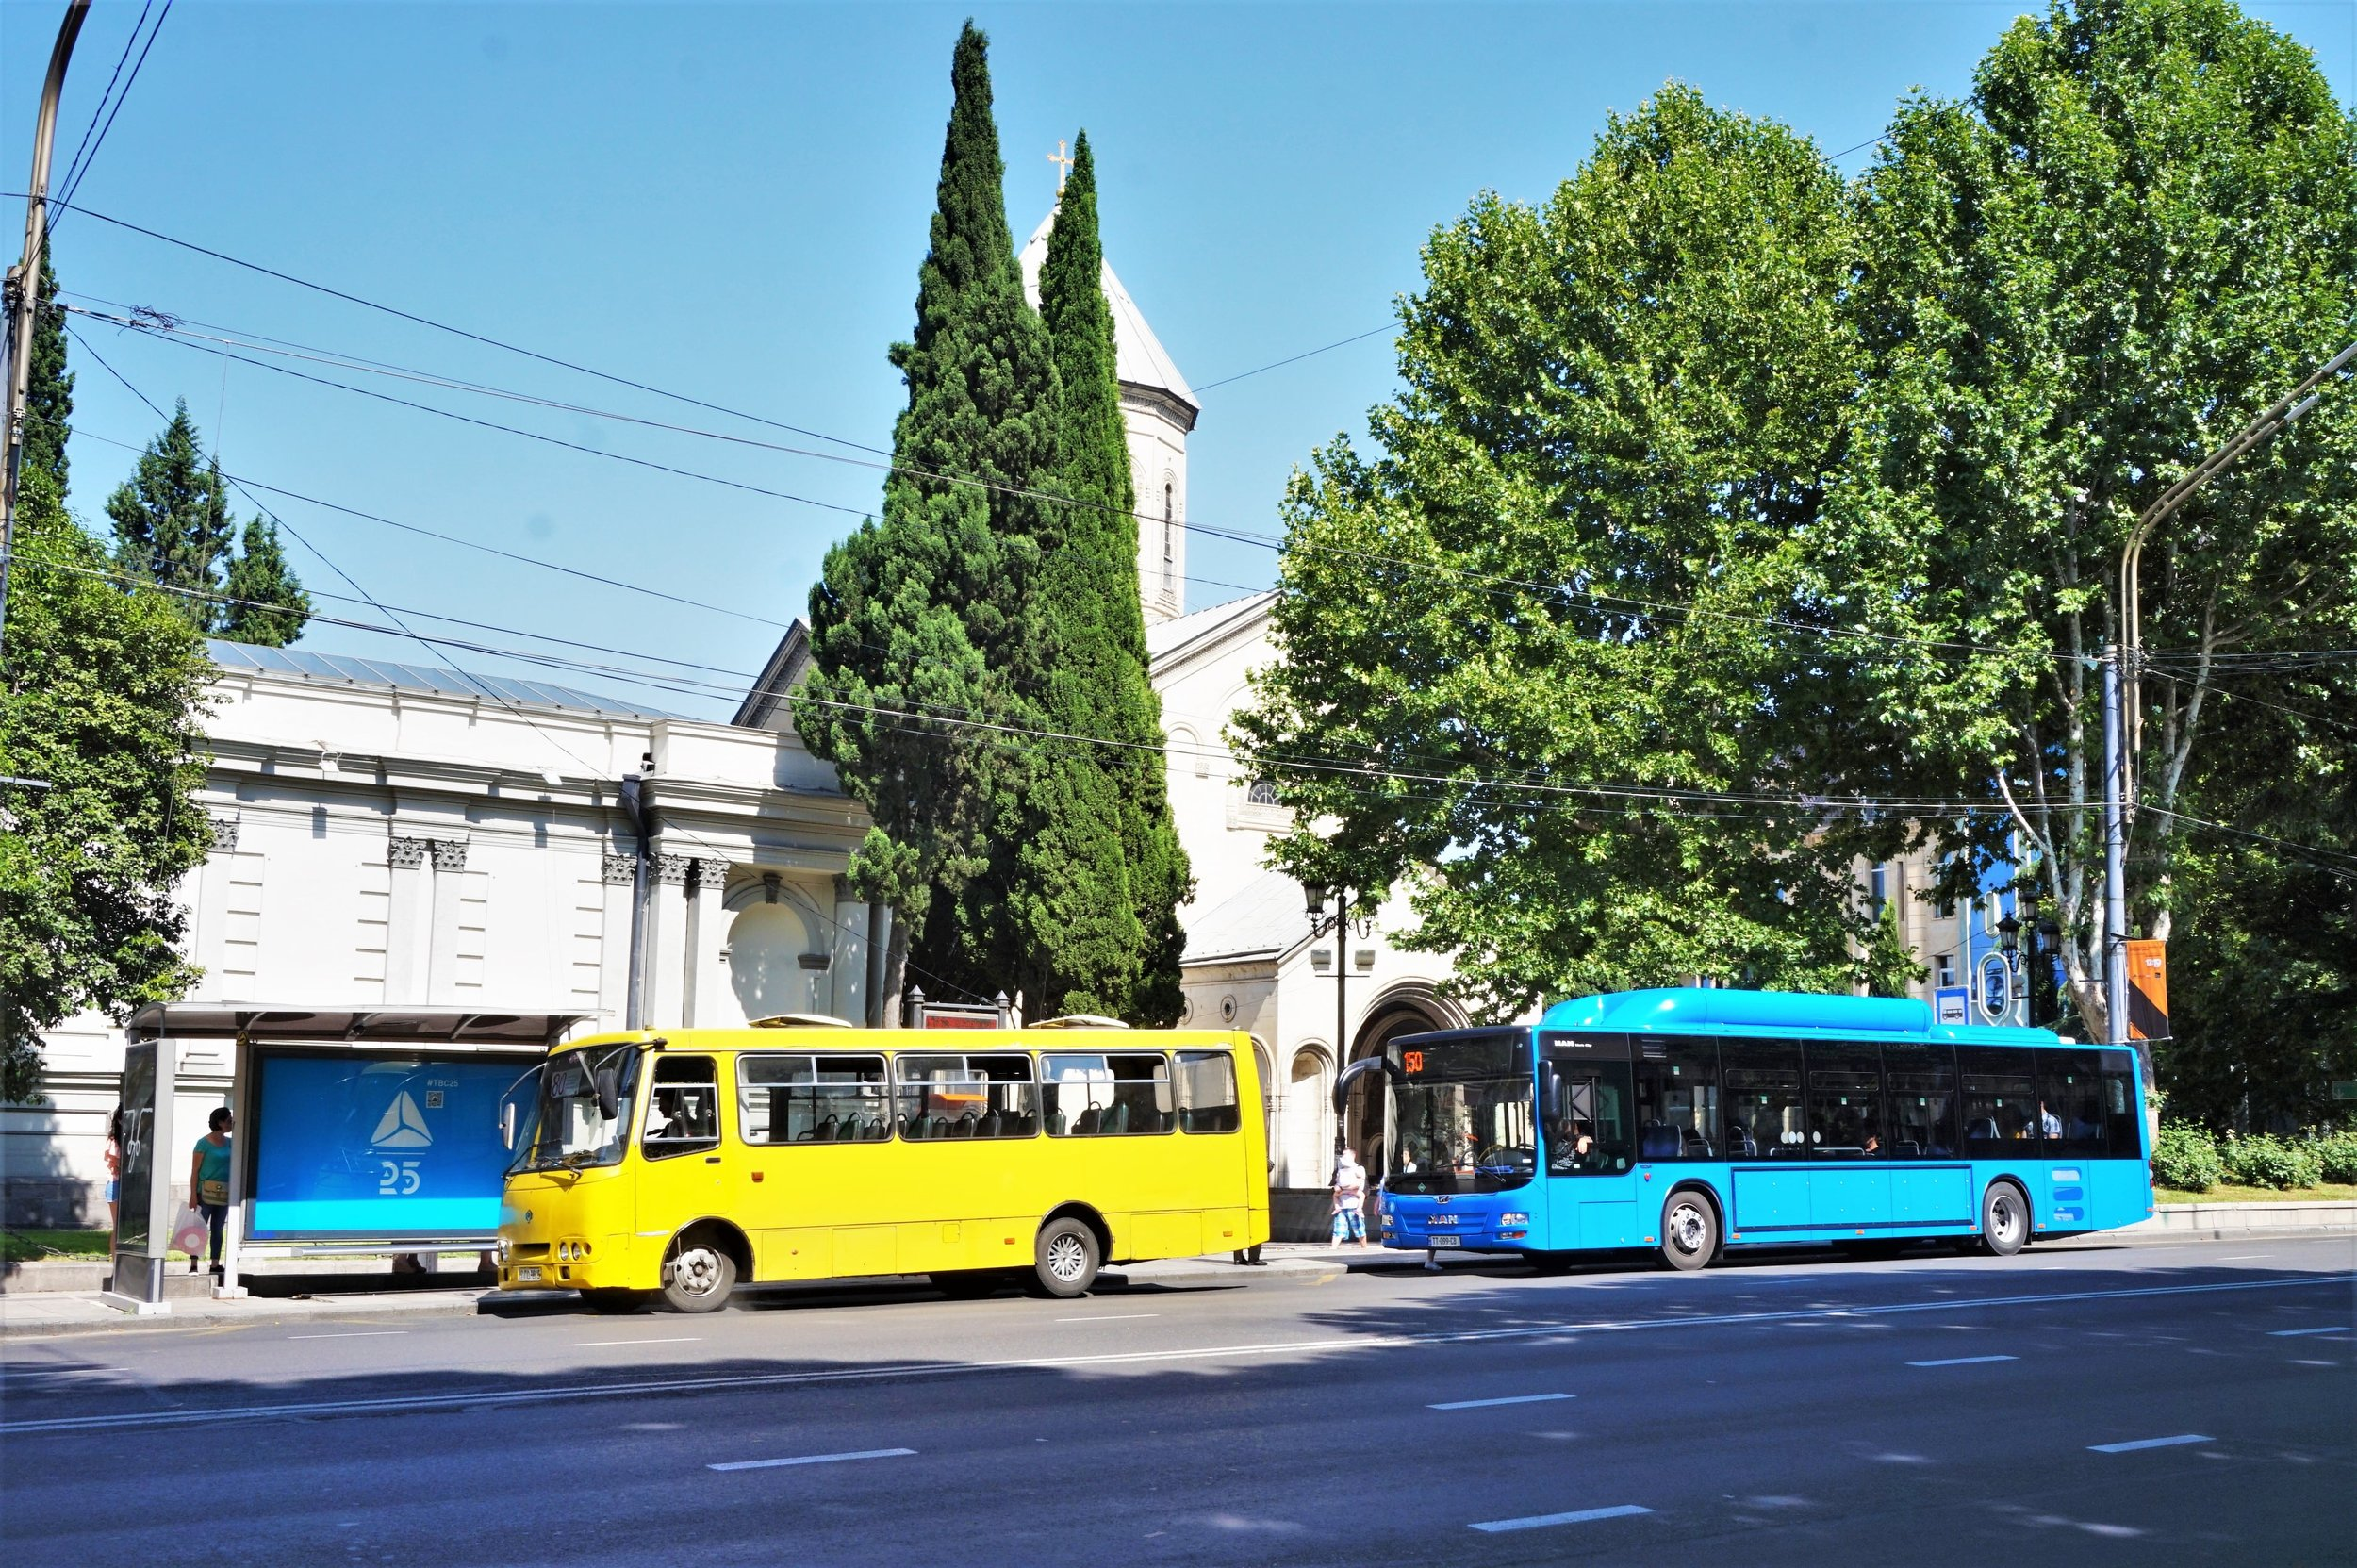 Plenty of bus lines make the Tbilisi public transport very sufficient and easy to reach even further away places of interest.